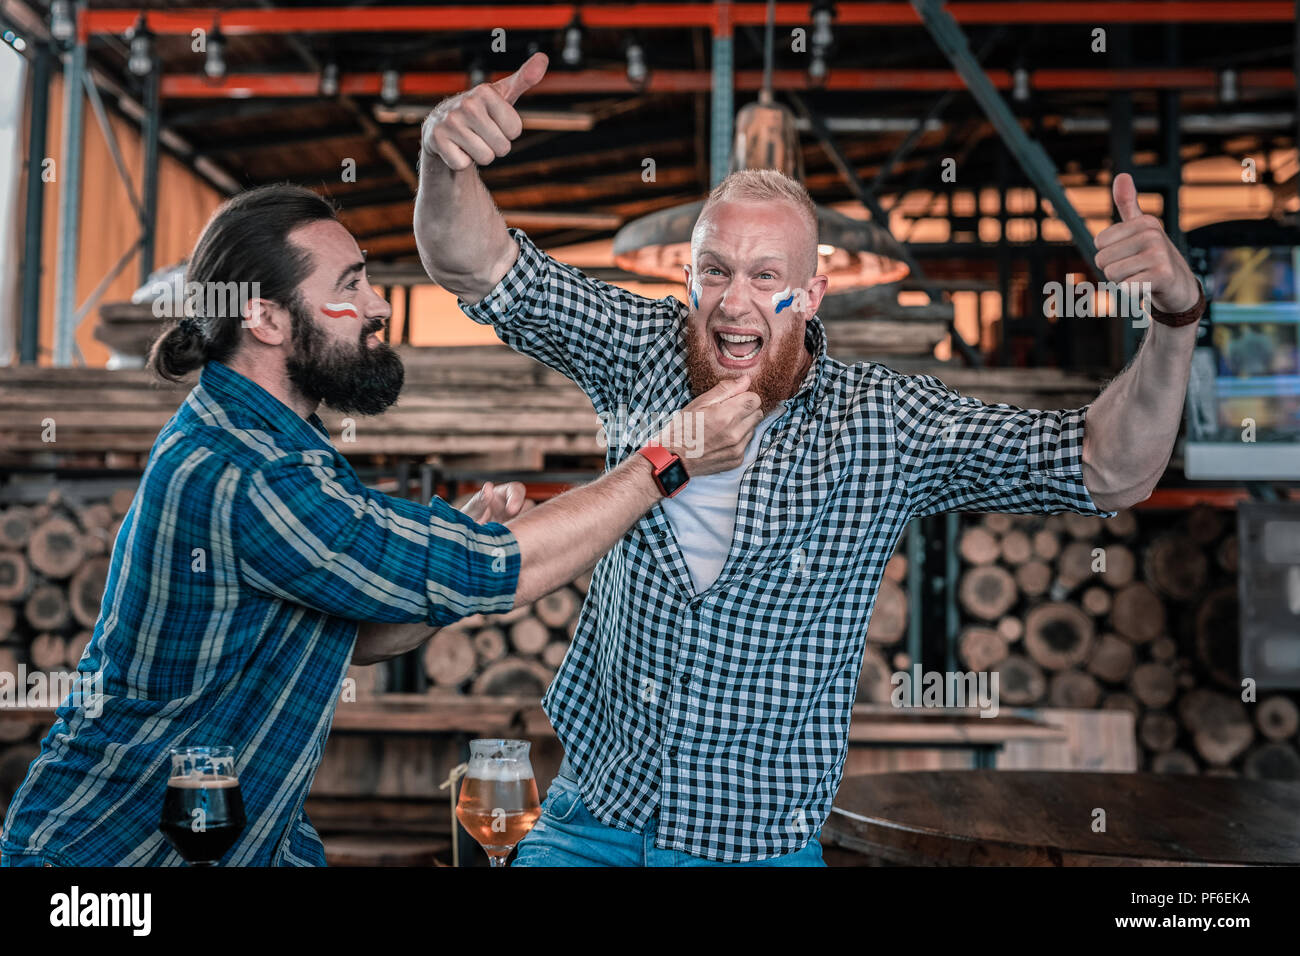 One of friends being happy after watching football game together - Stock Image